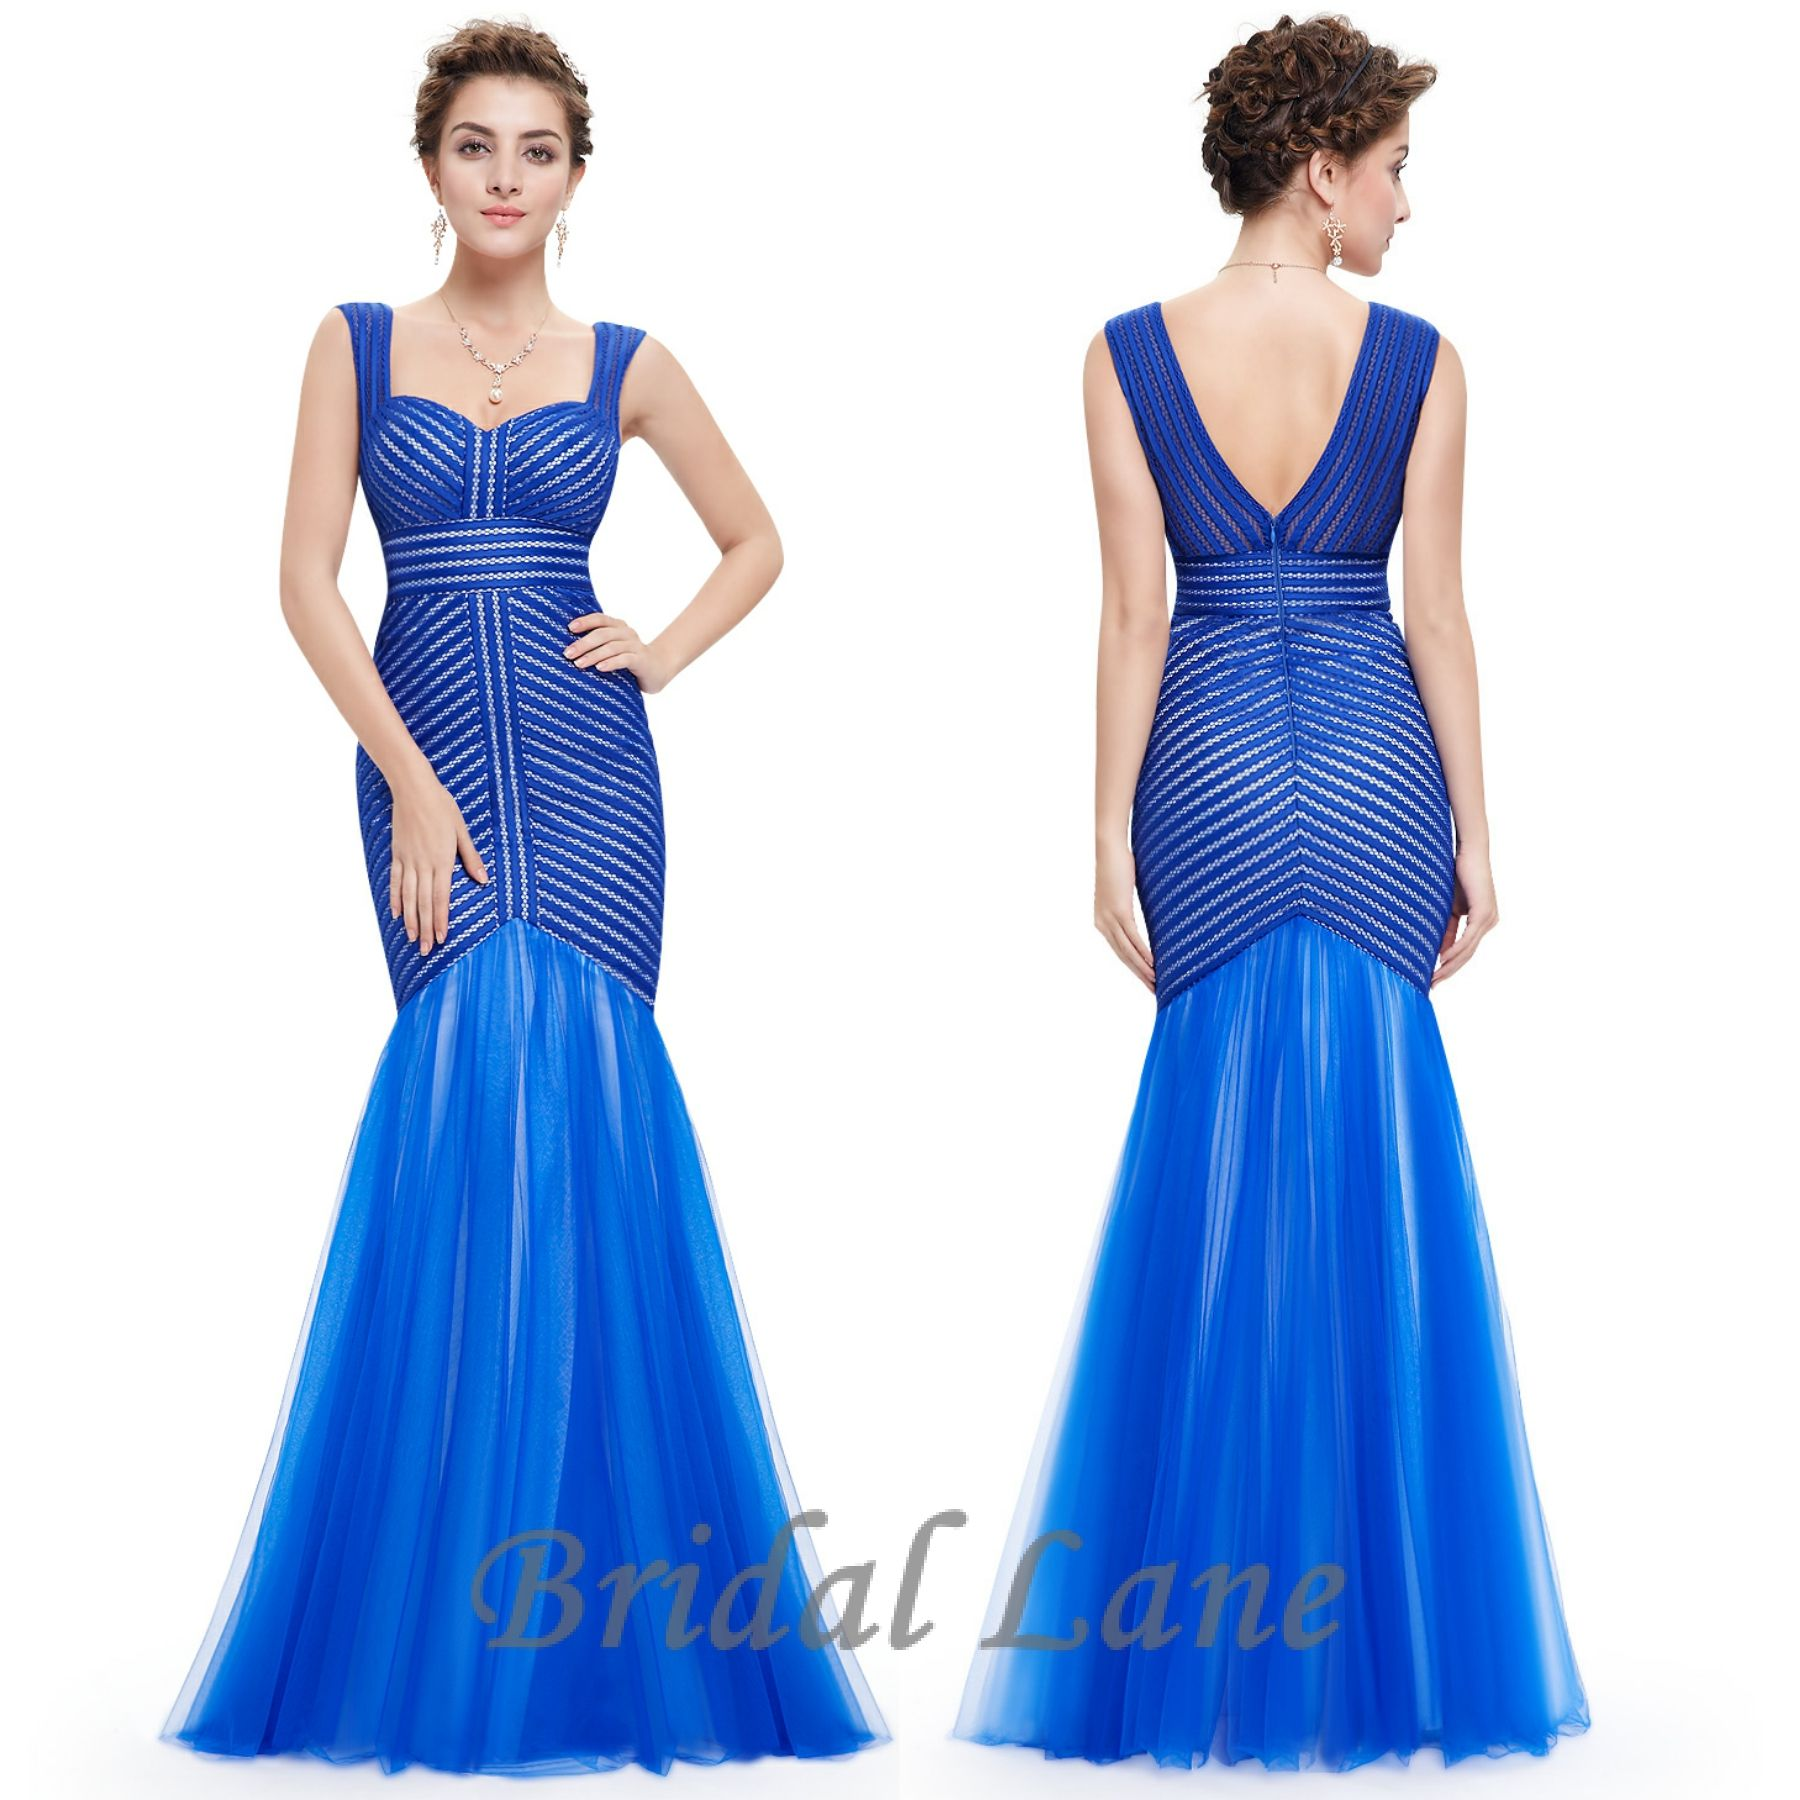 Matric dance dresses matric farewell dresses evening dresses pictures - Cape Town South Africa Evening Dresses Breathtaking Designs Matric Farewell Dresses Matric Ball Dresses